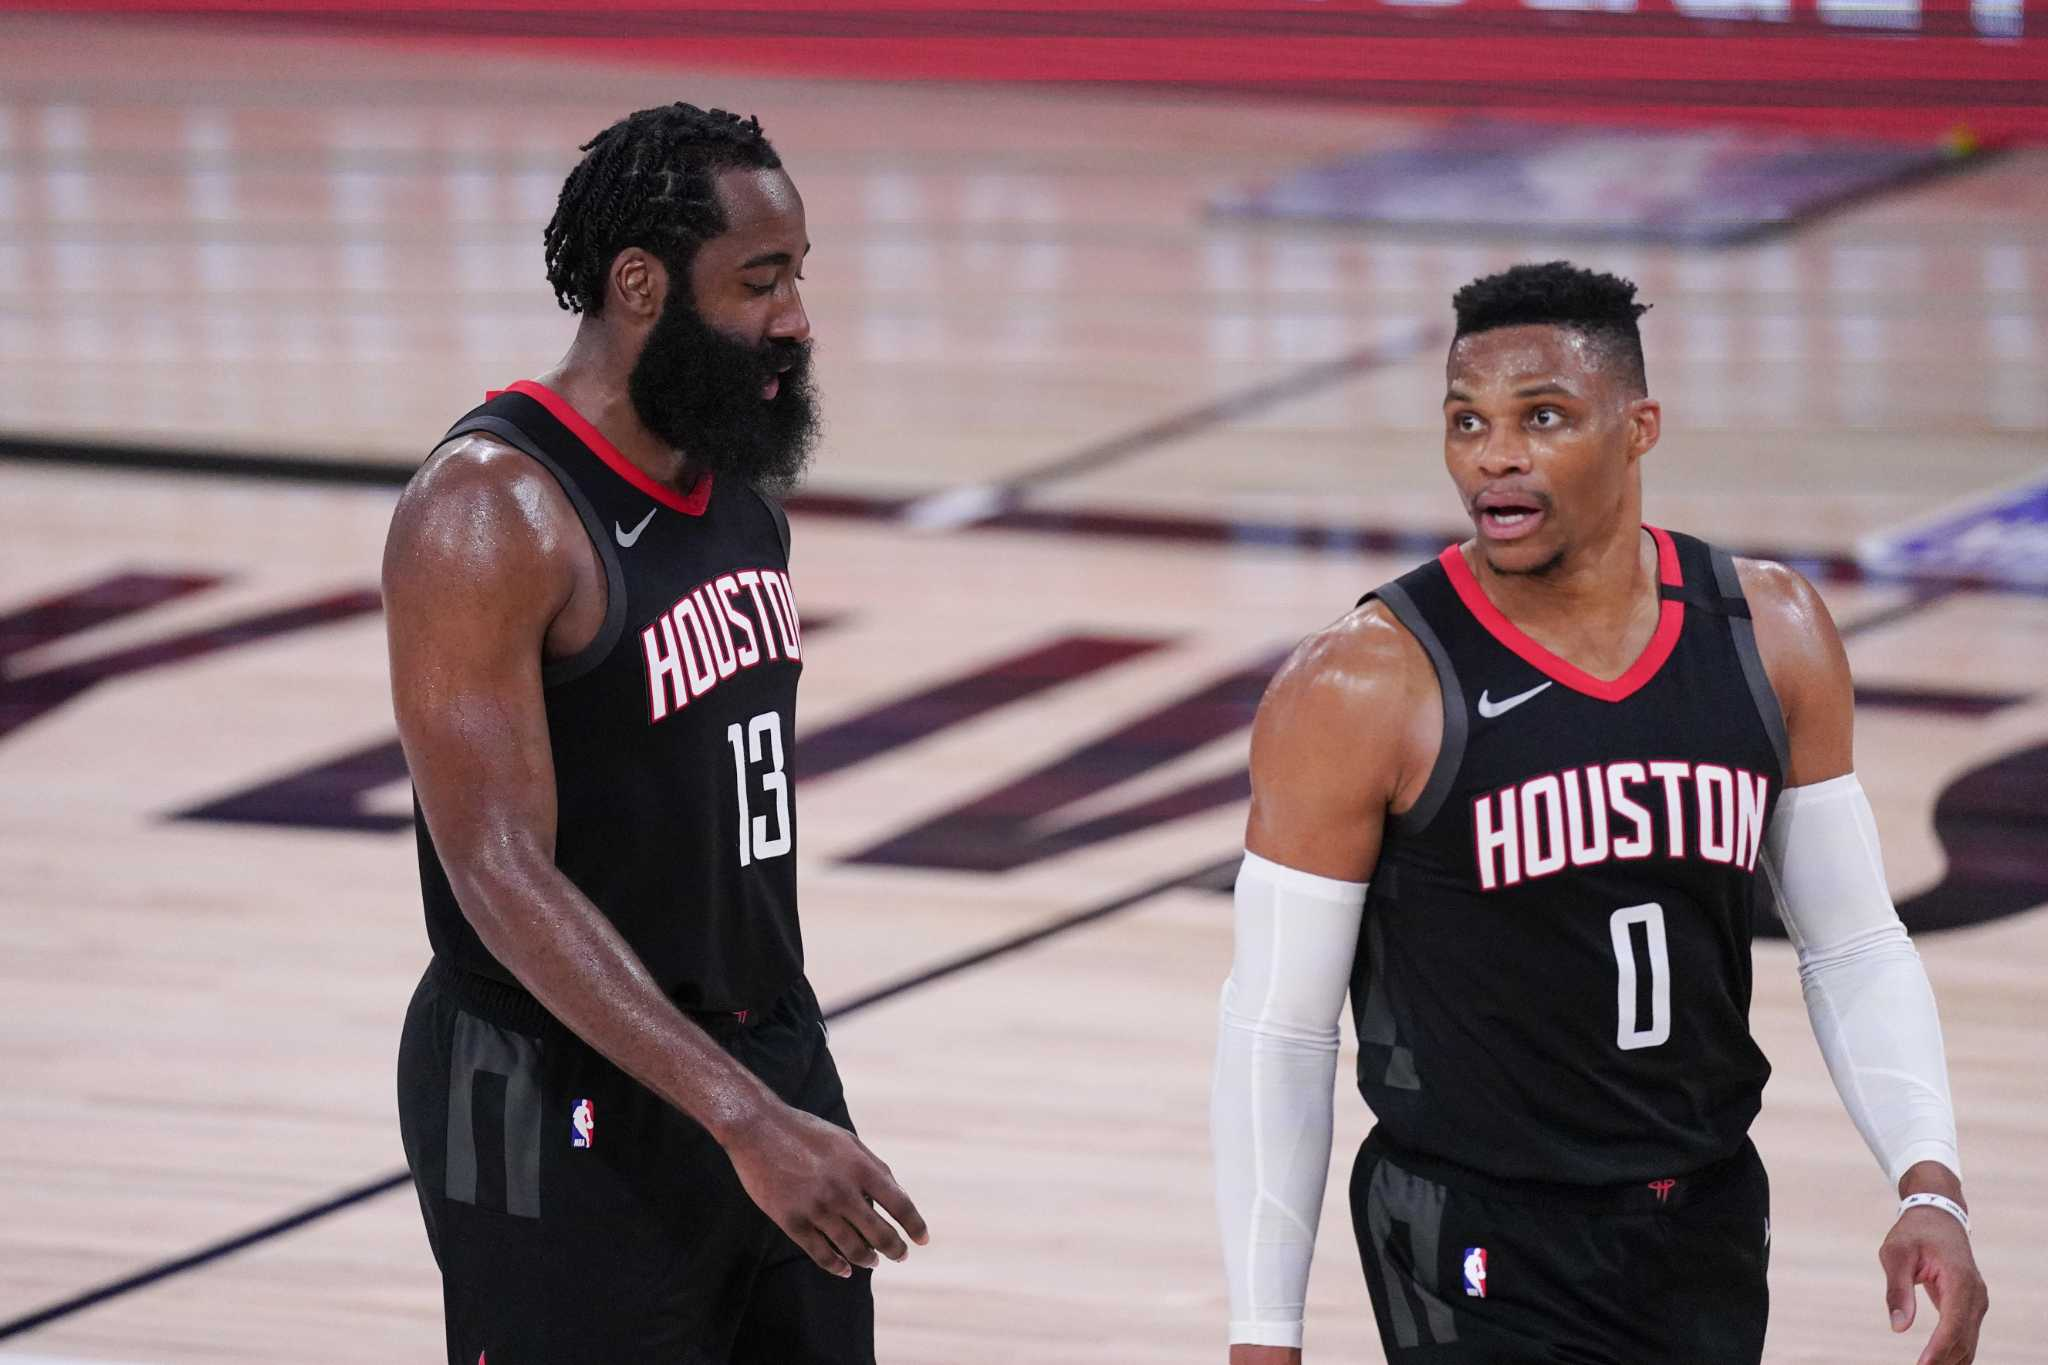 NBA's goal is for 82 games next season but may start in 2021 - HoustonChronicle.com